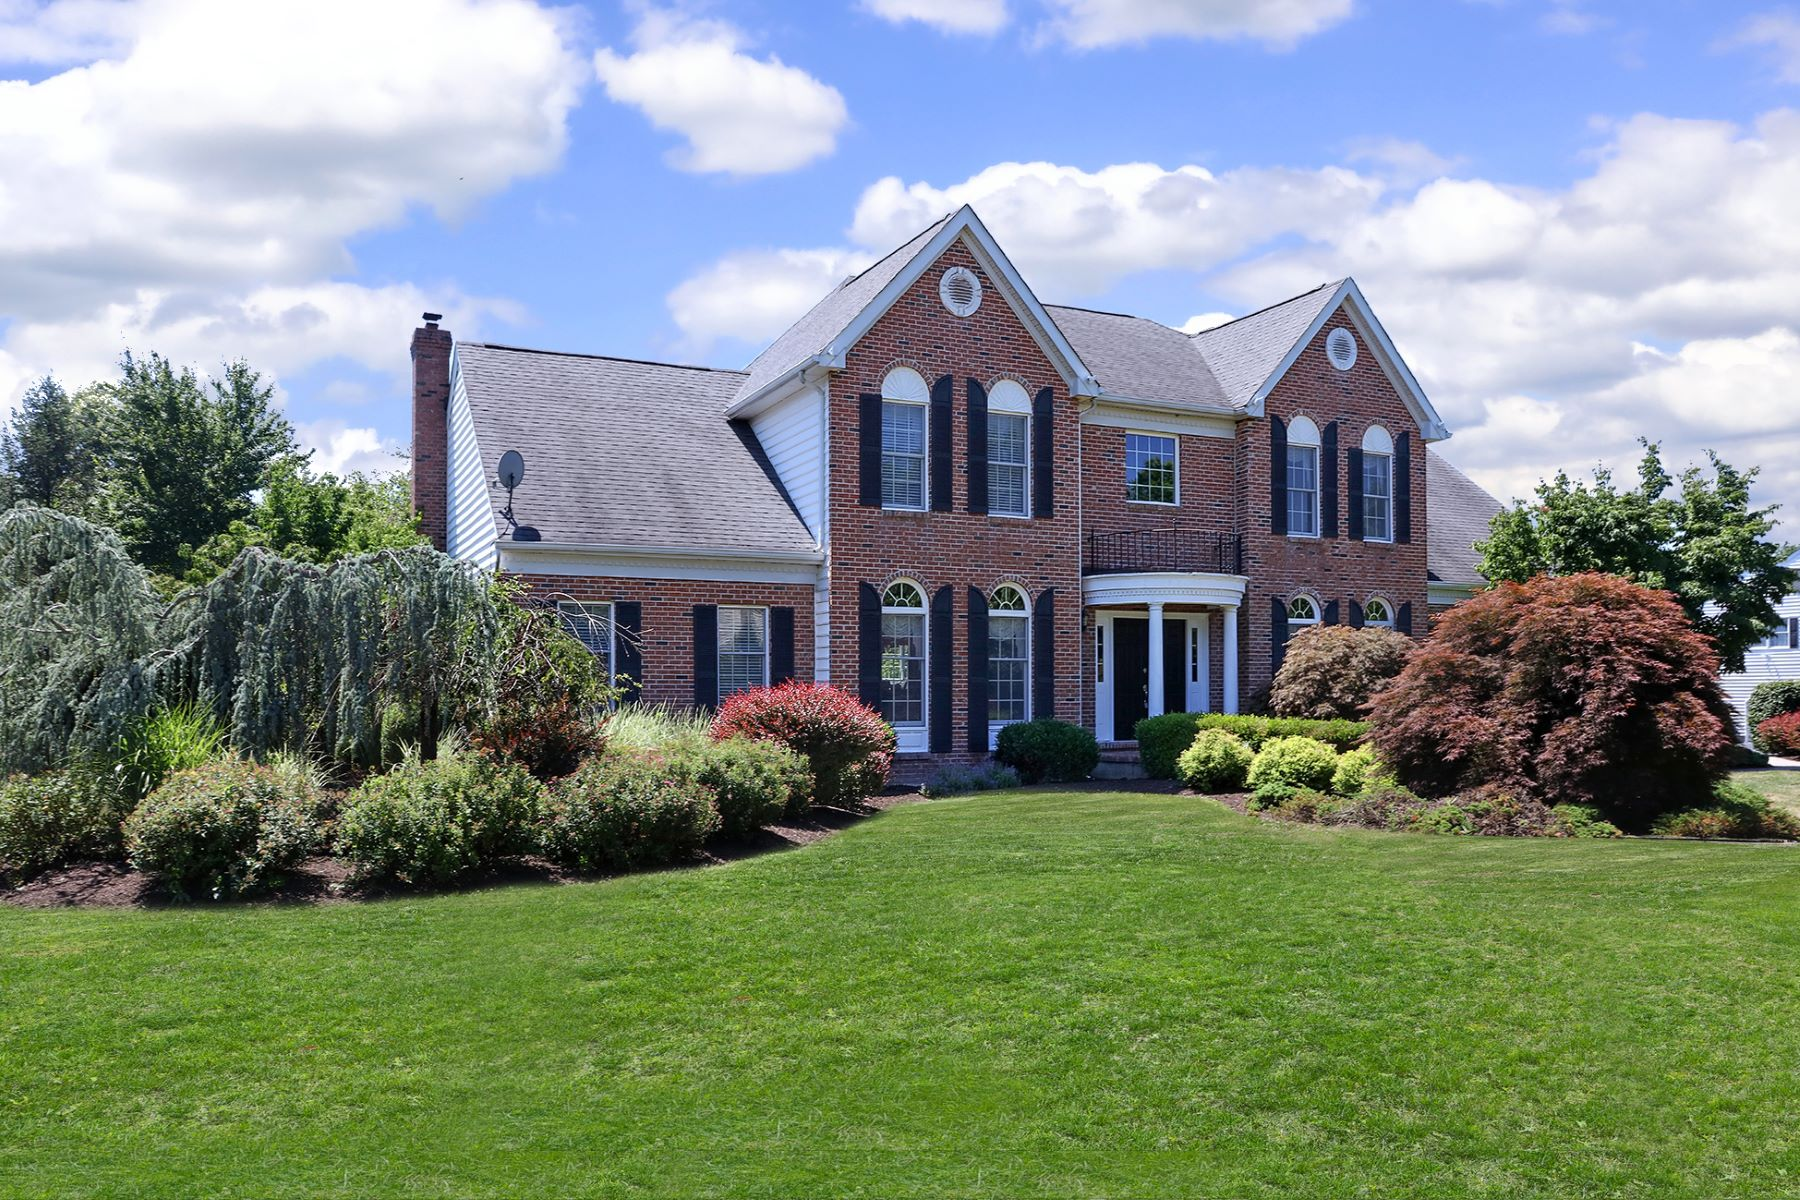 Single Family Home for Sale at A True Beauty in Hopewell Hunt 1 Caroline Drive, Princeton, New Jersey 08540 United States